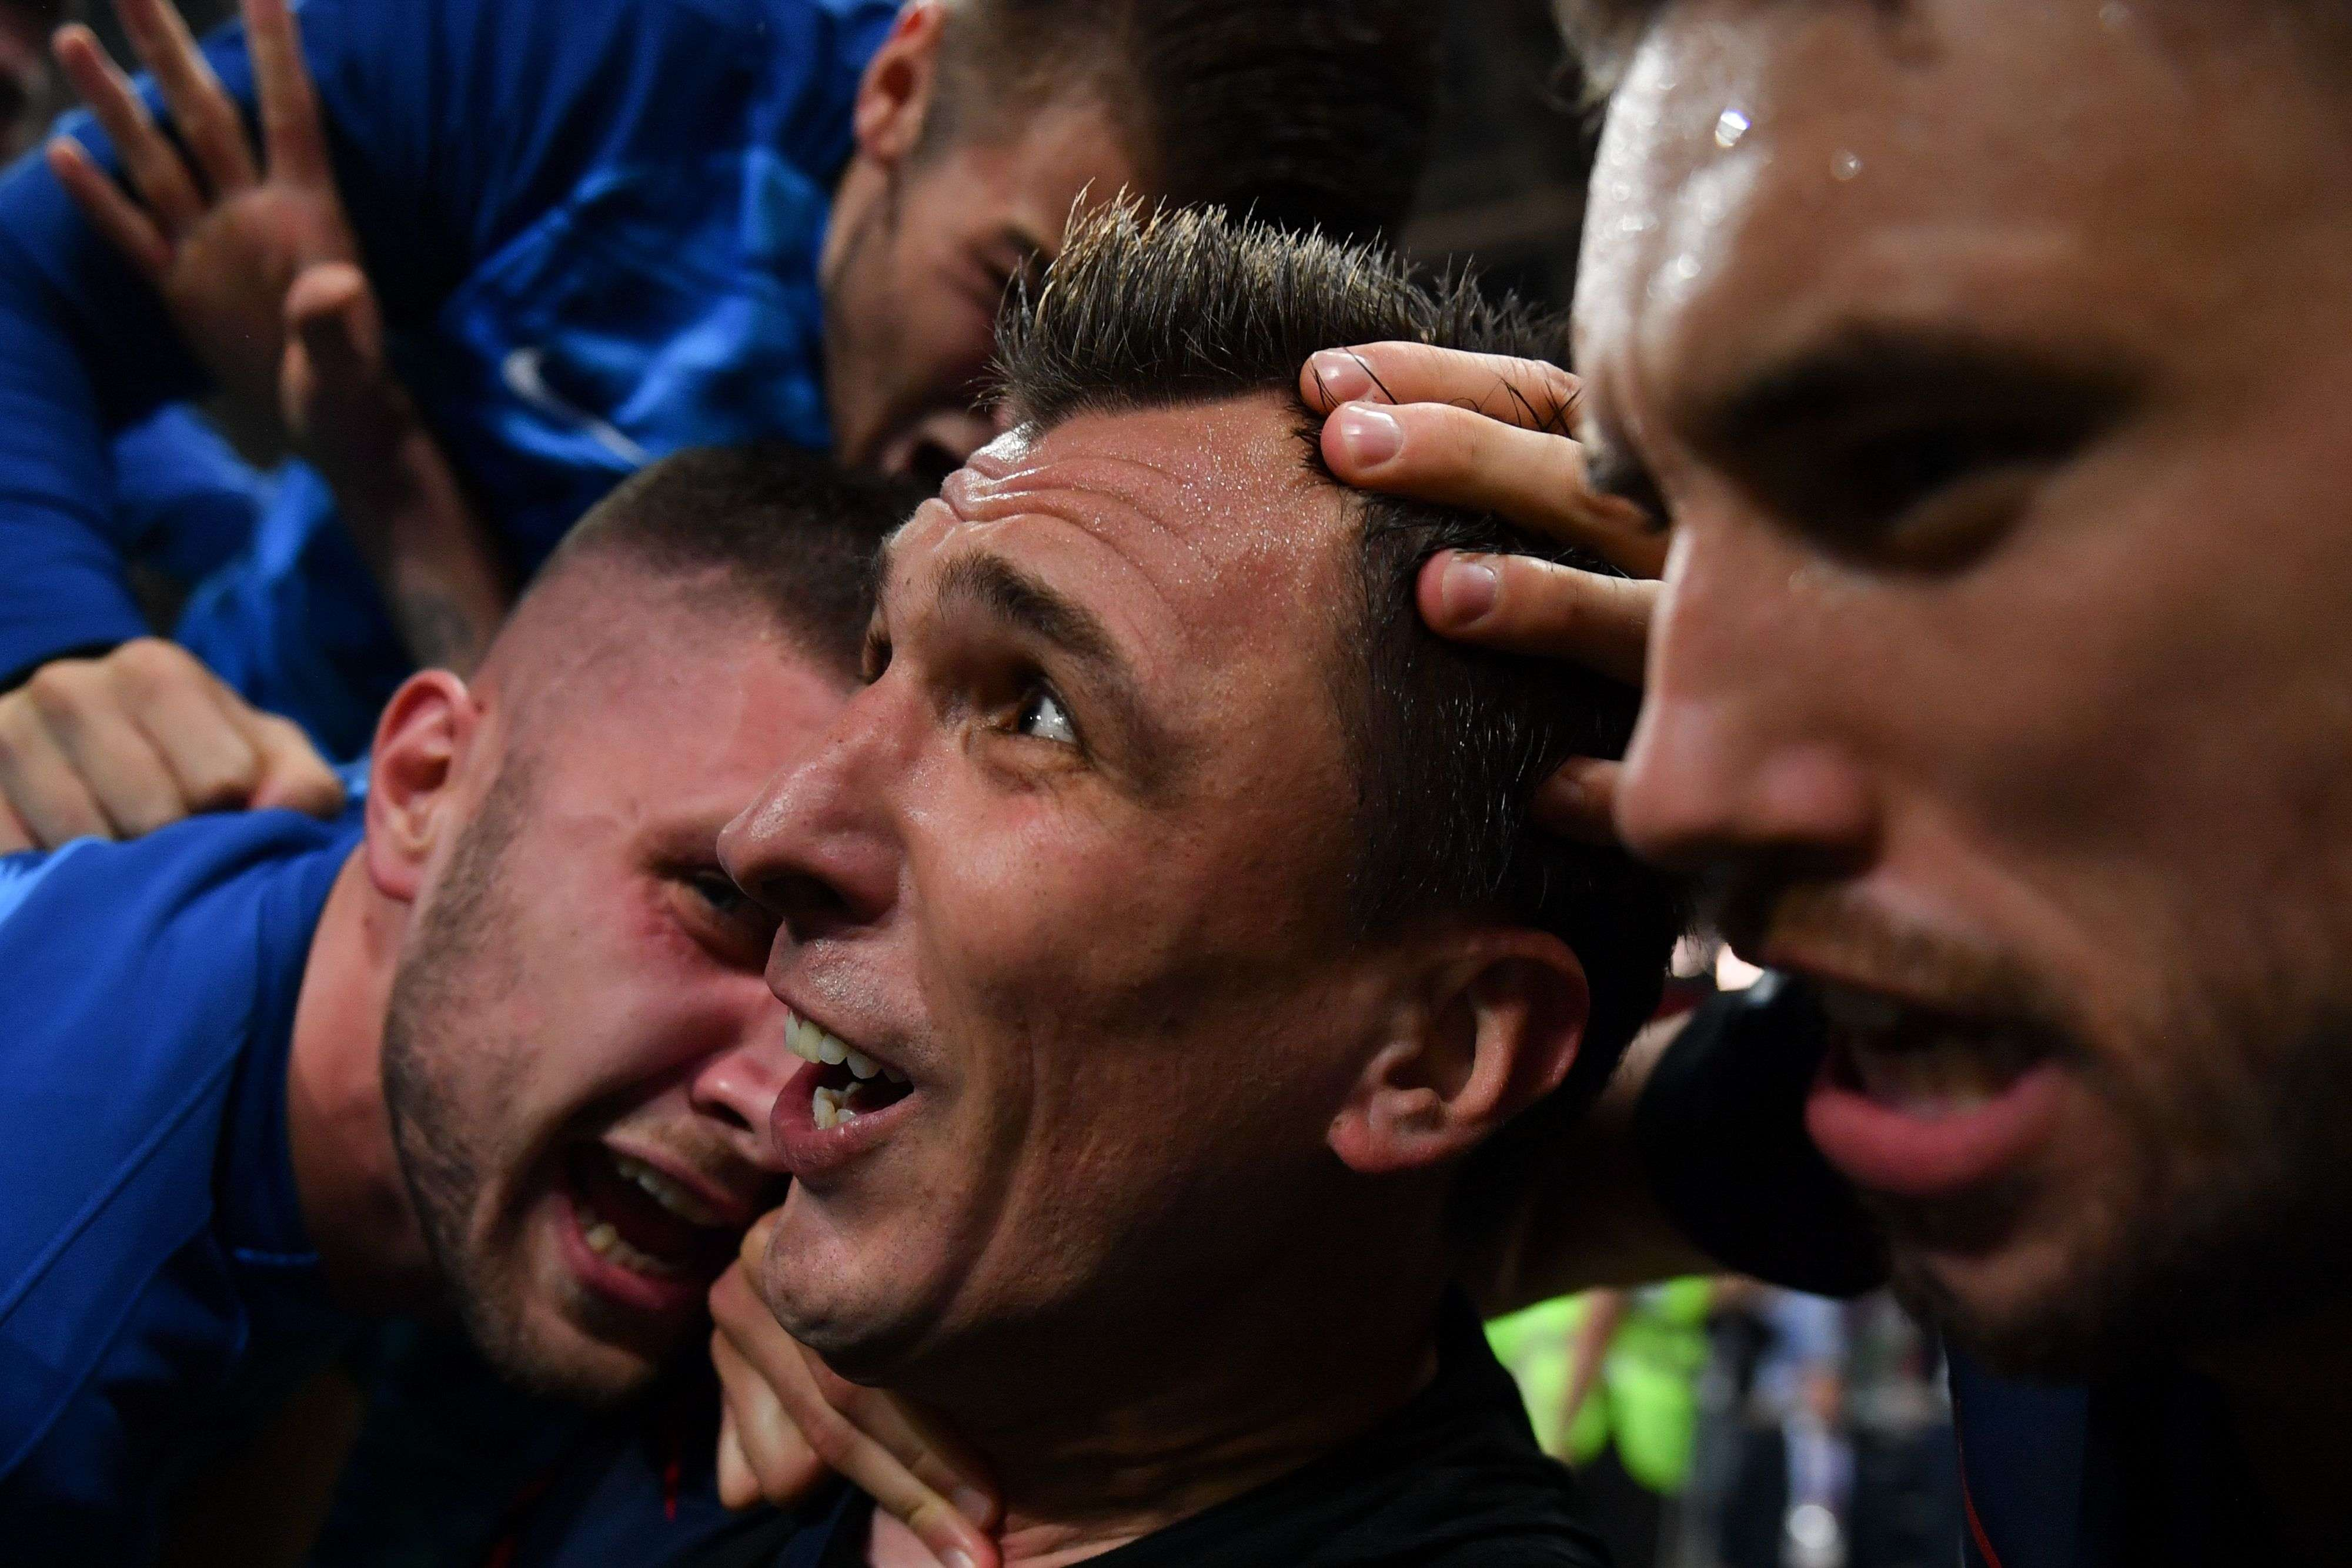 TOPSHOT - Croatia's forward Mario Mandzukic (C) celebrates with teammates after scoring his team's second goal during the Russia 2018 World Cup semi-final football match between Croatia and England at the Luzhniki Stadium in Moscow on July 11, 2018. RESTRICTED TO EDITORIAL USE - NO MOBILE PUSH ALERTS/DOWNLOADS / AFP / Yuri CORTEZ / RESTRICTED TO EDITORIAL USE - NO MOBILE PUSH ALERTS/DOWNLOADS